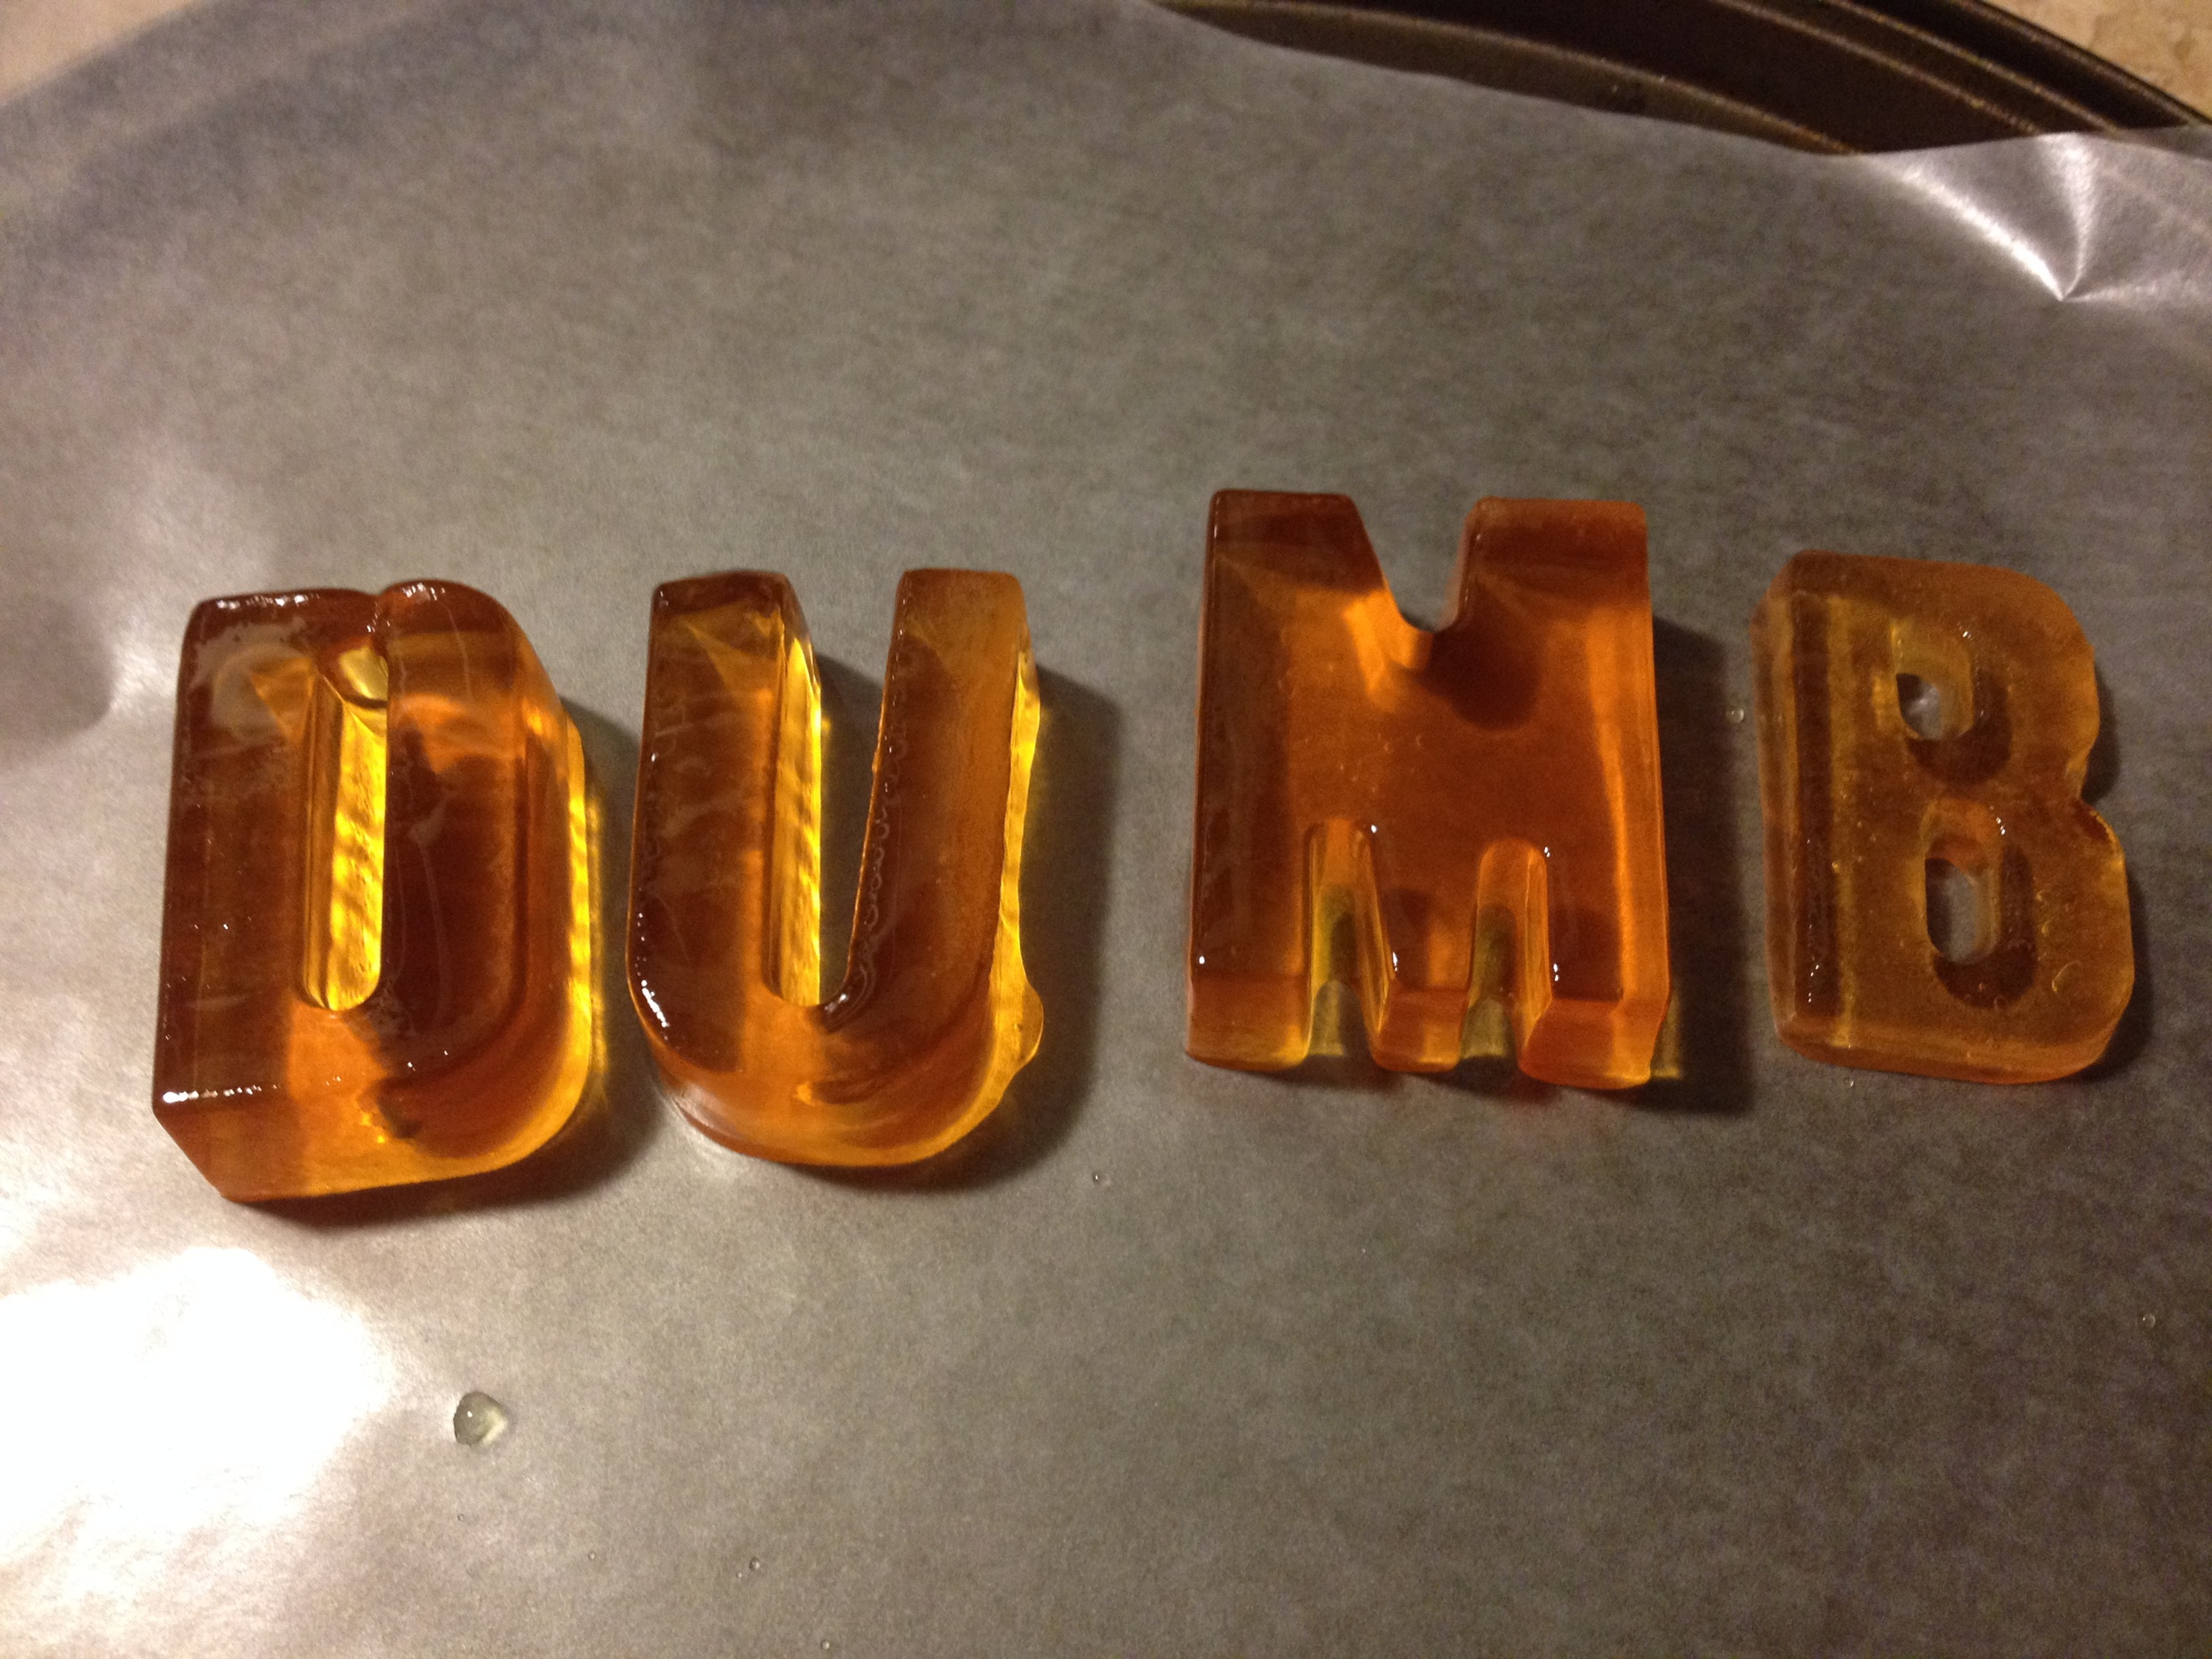 Jello letters. Seemed like a good idea at the time. 2014.